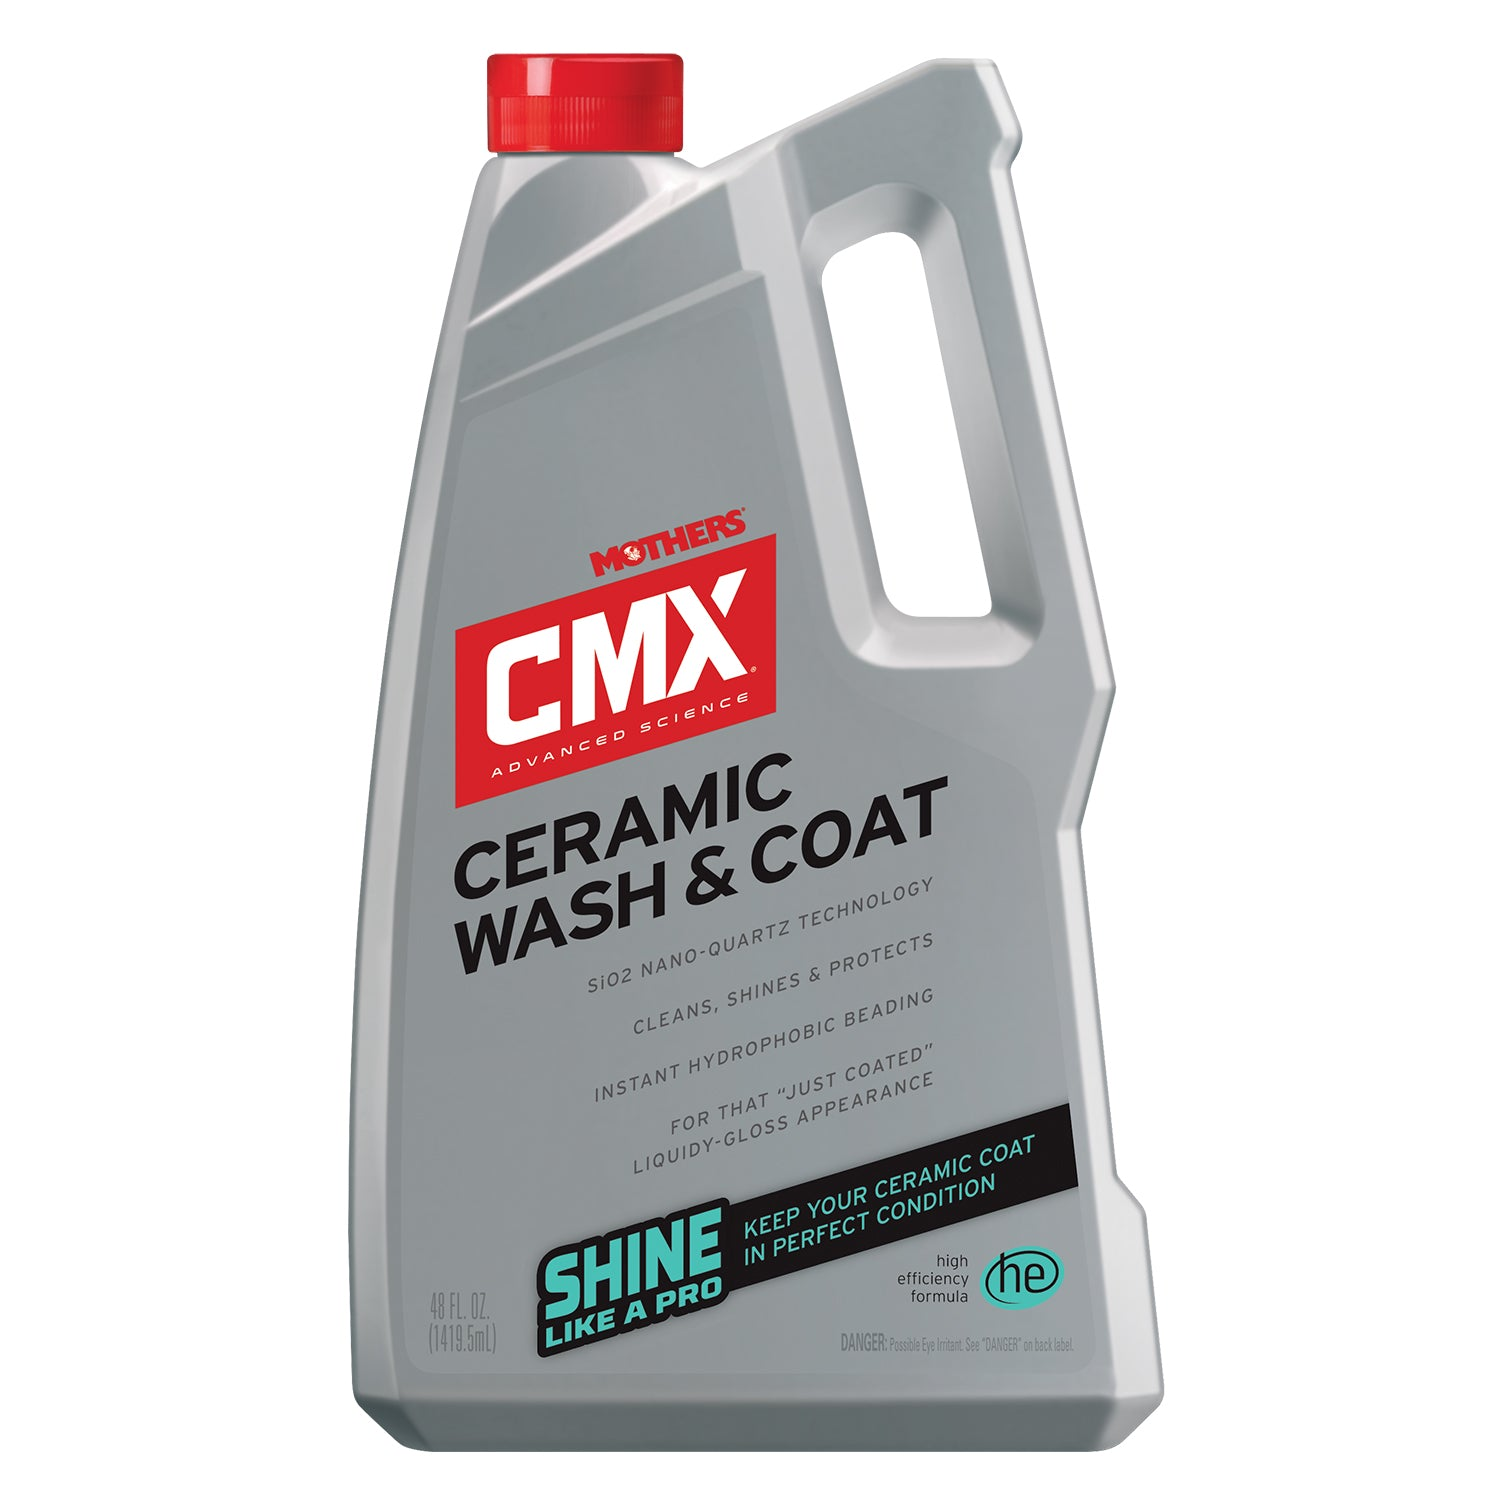 Mothers CMX Ceramic Wash and Coat